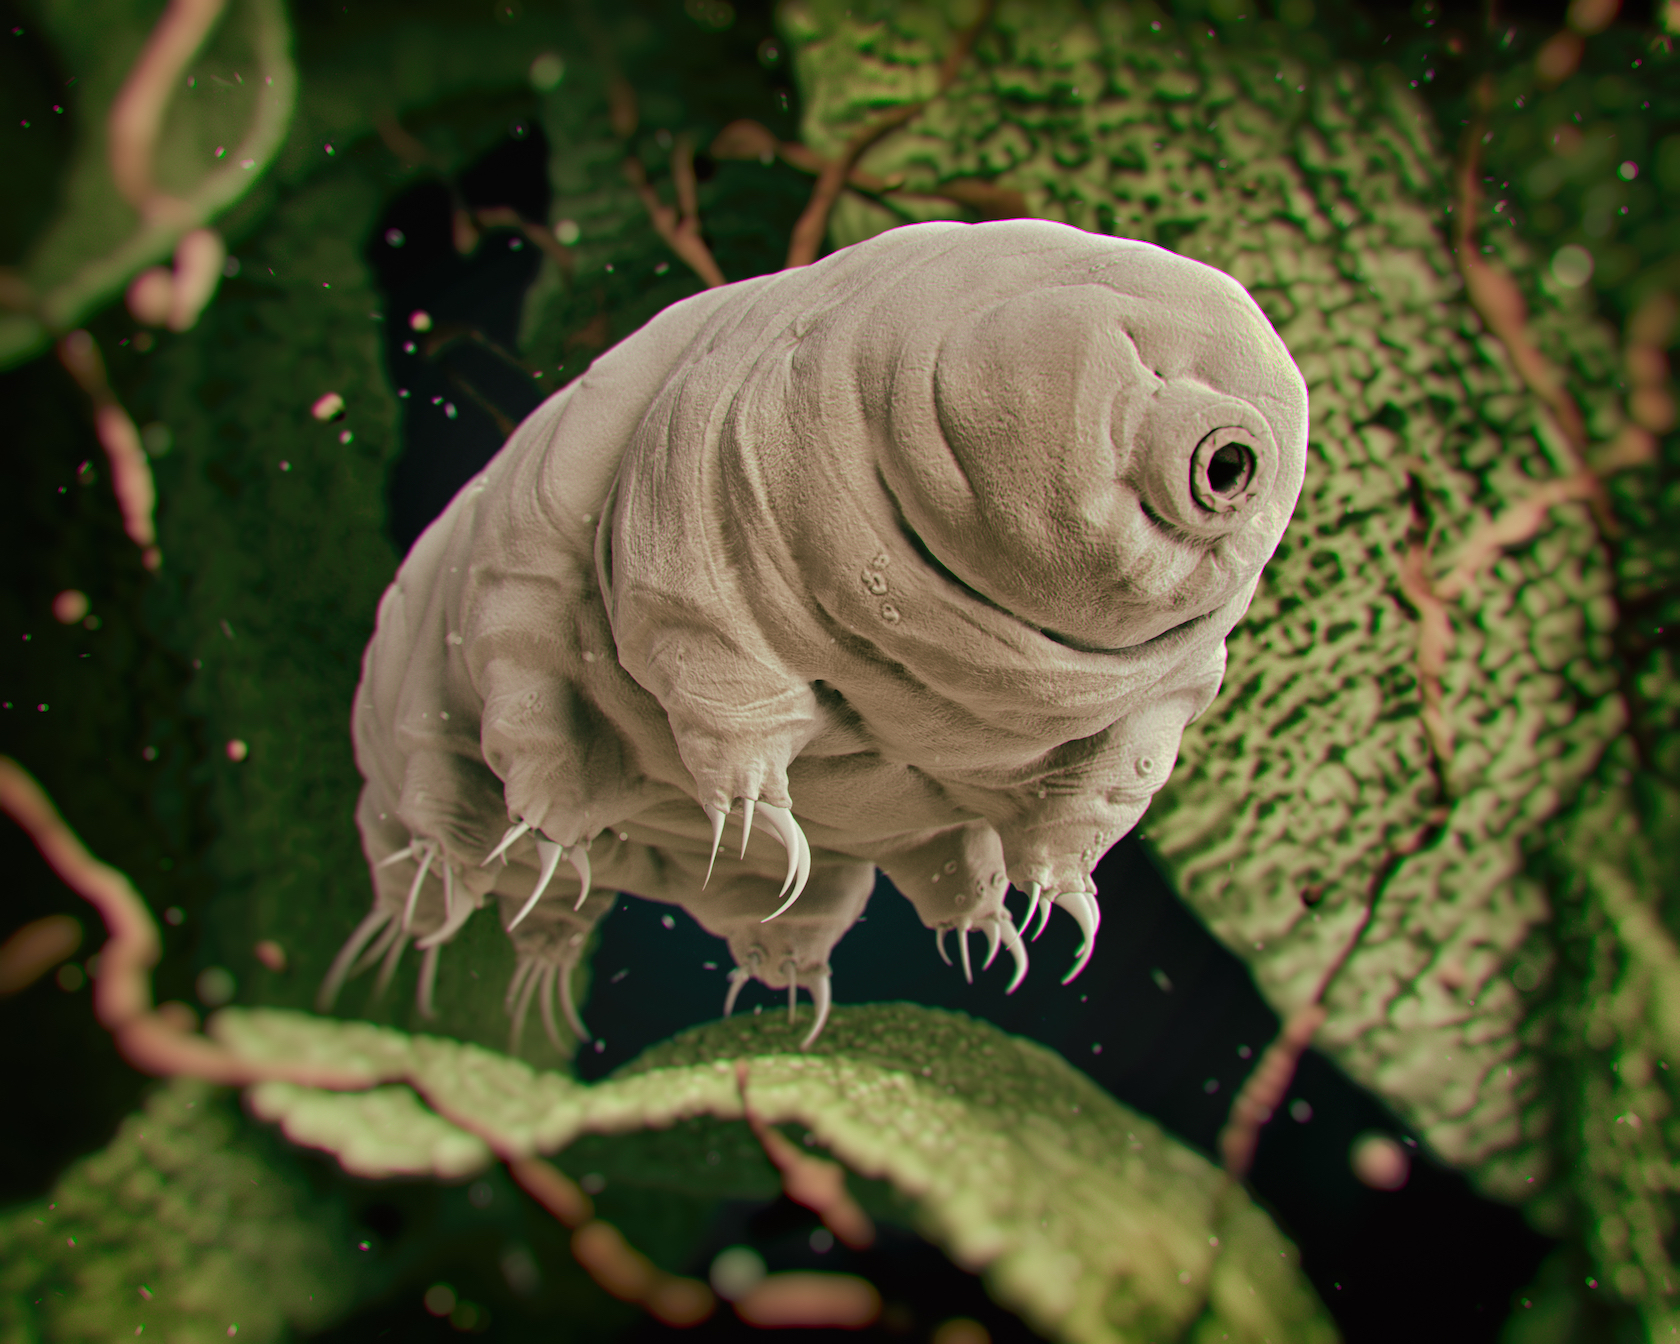 The Tardigrade, an eight-legged micro-animal, may be the world's most indestructible species and will exist for at least 10 billion years.